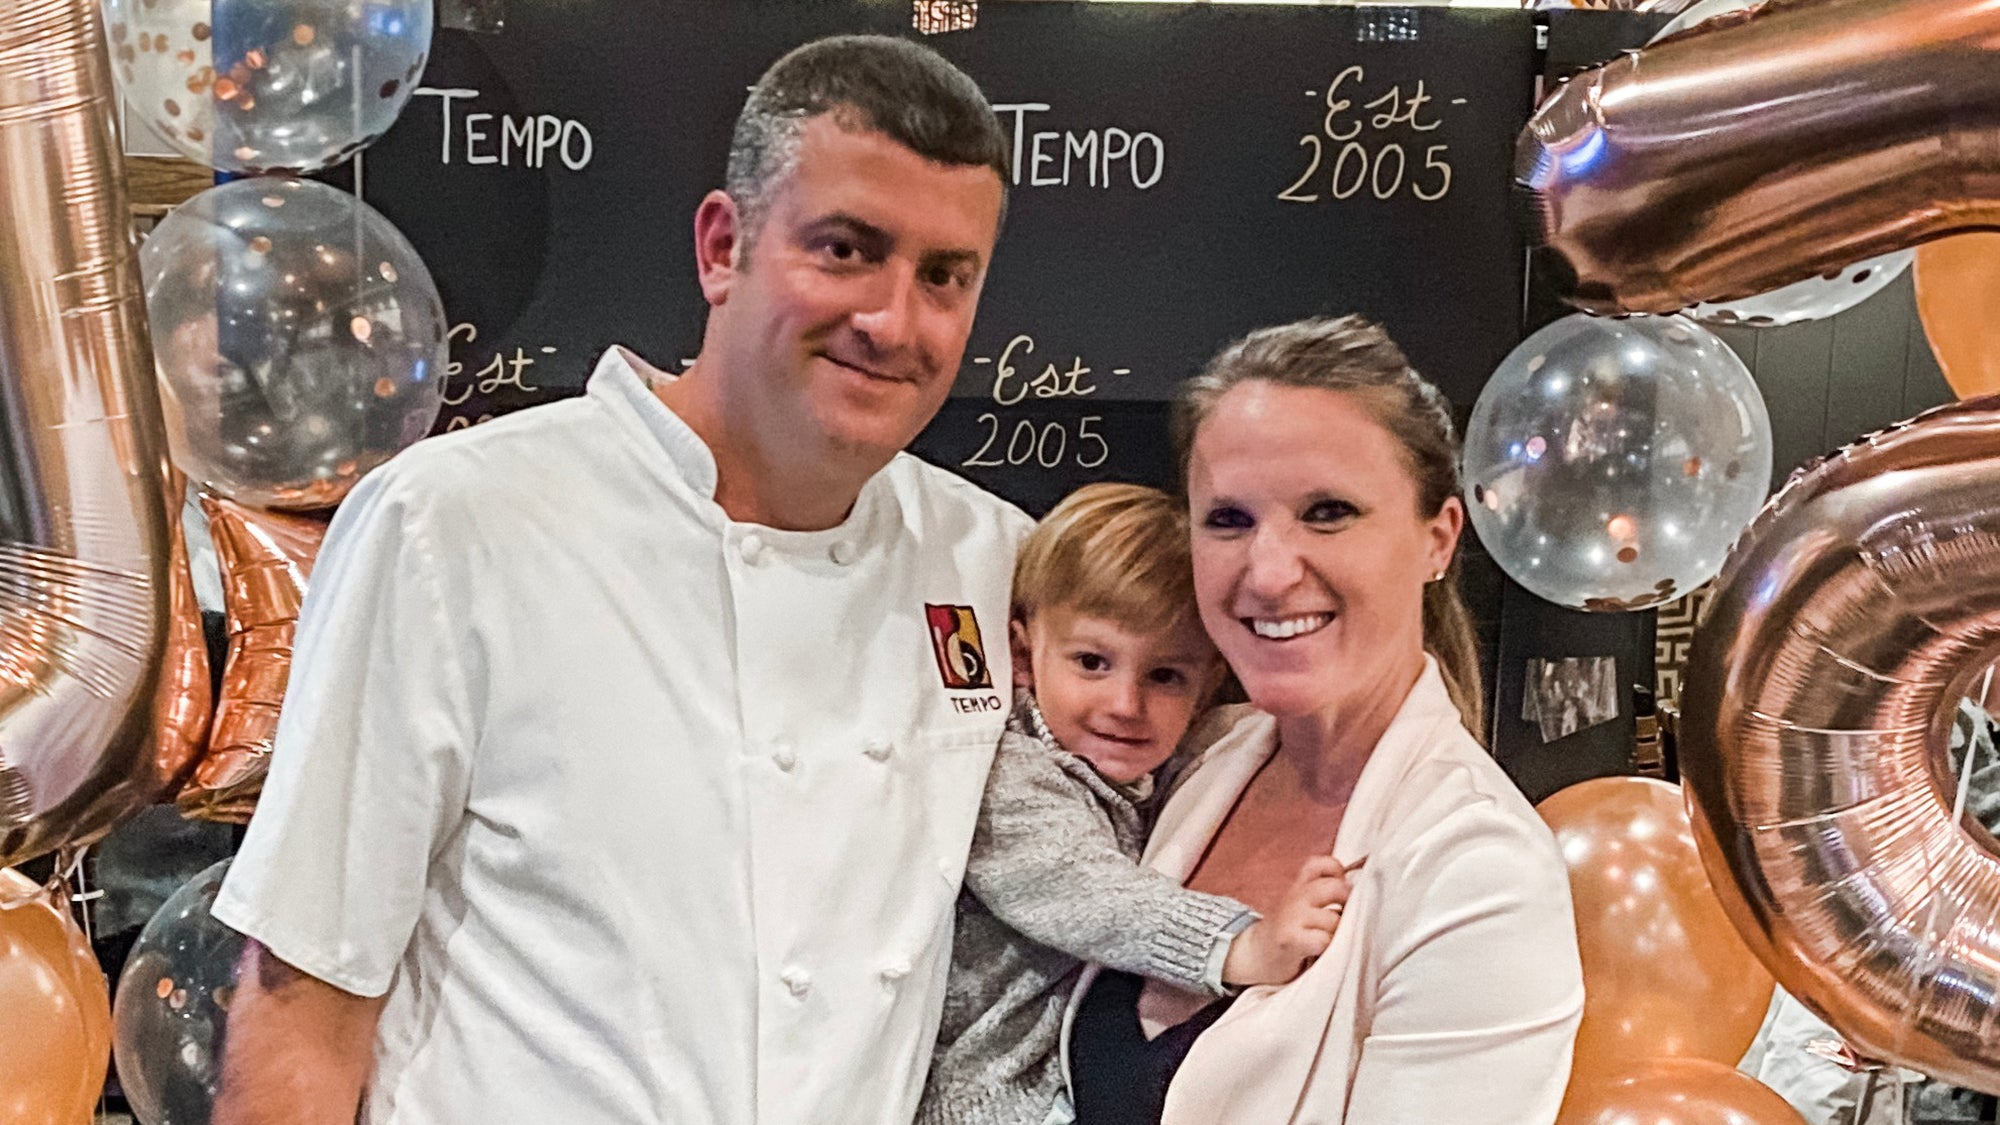 Nathan Sigel, Erin Barnicle, and their son, Spencer